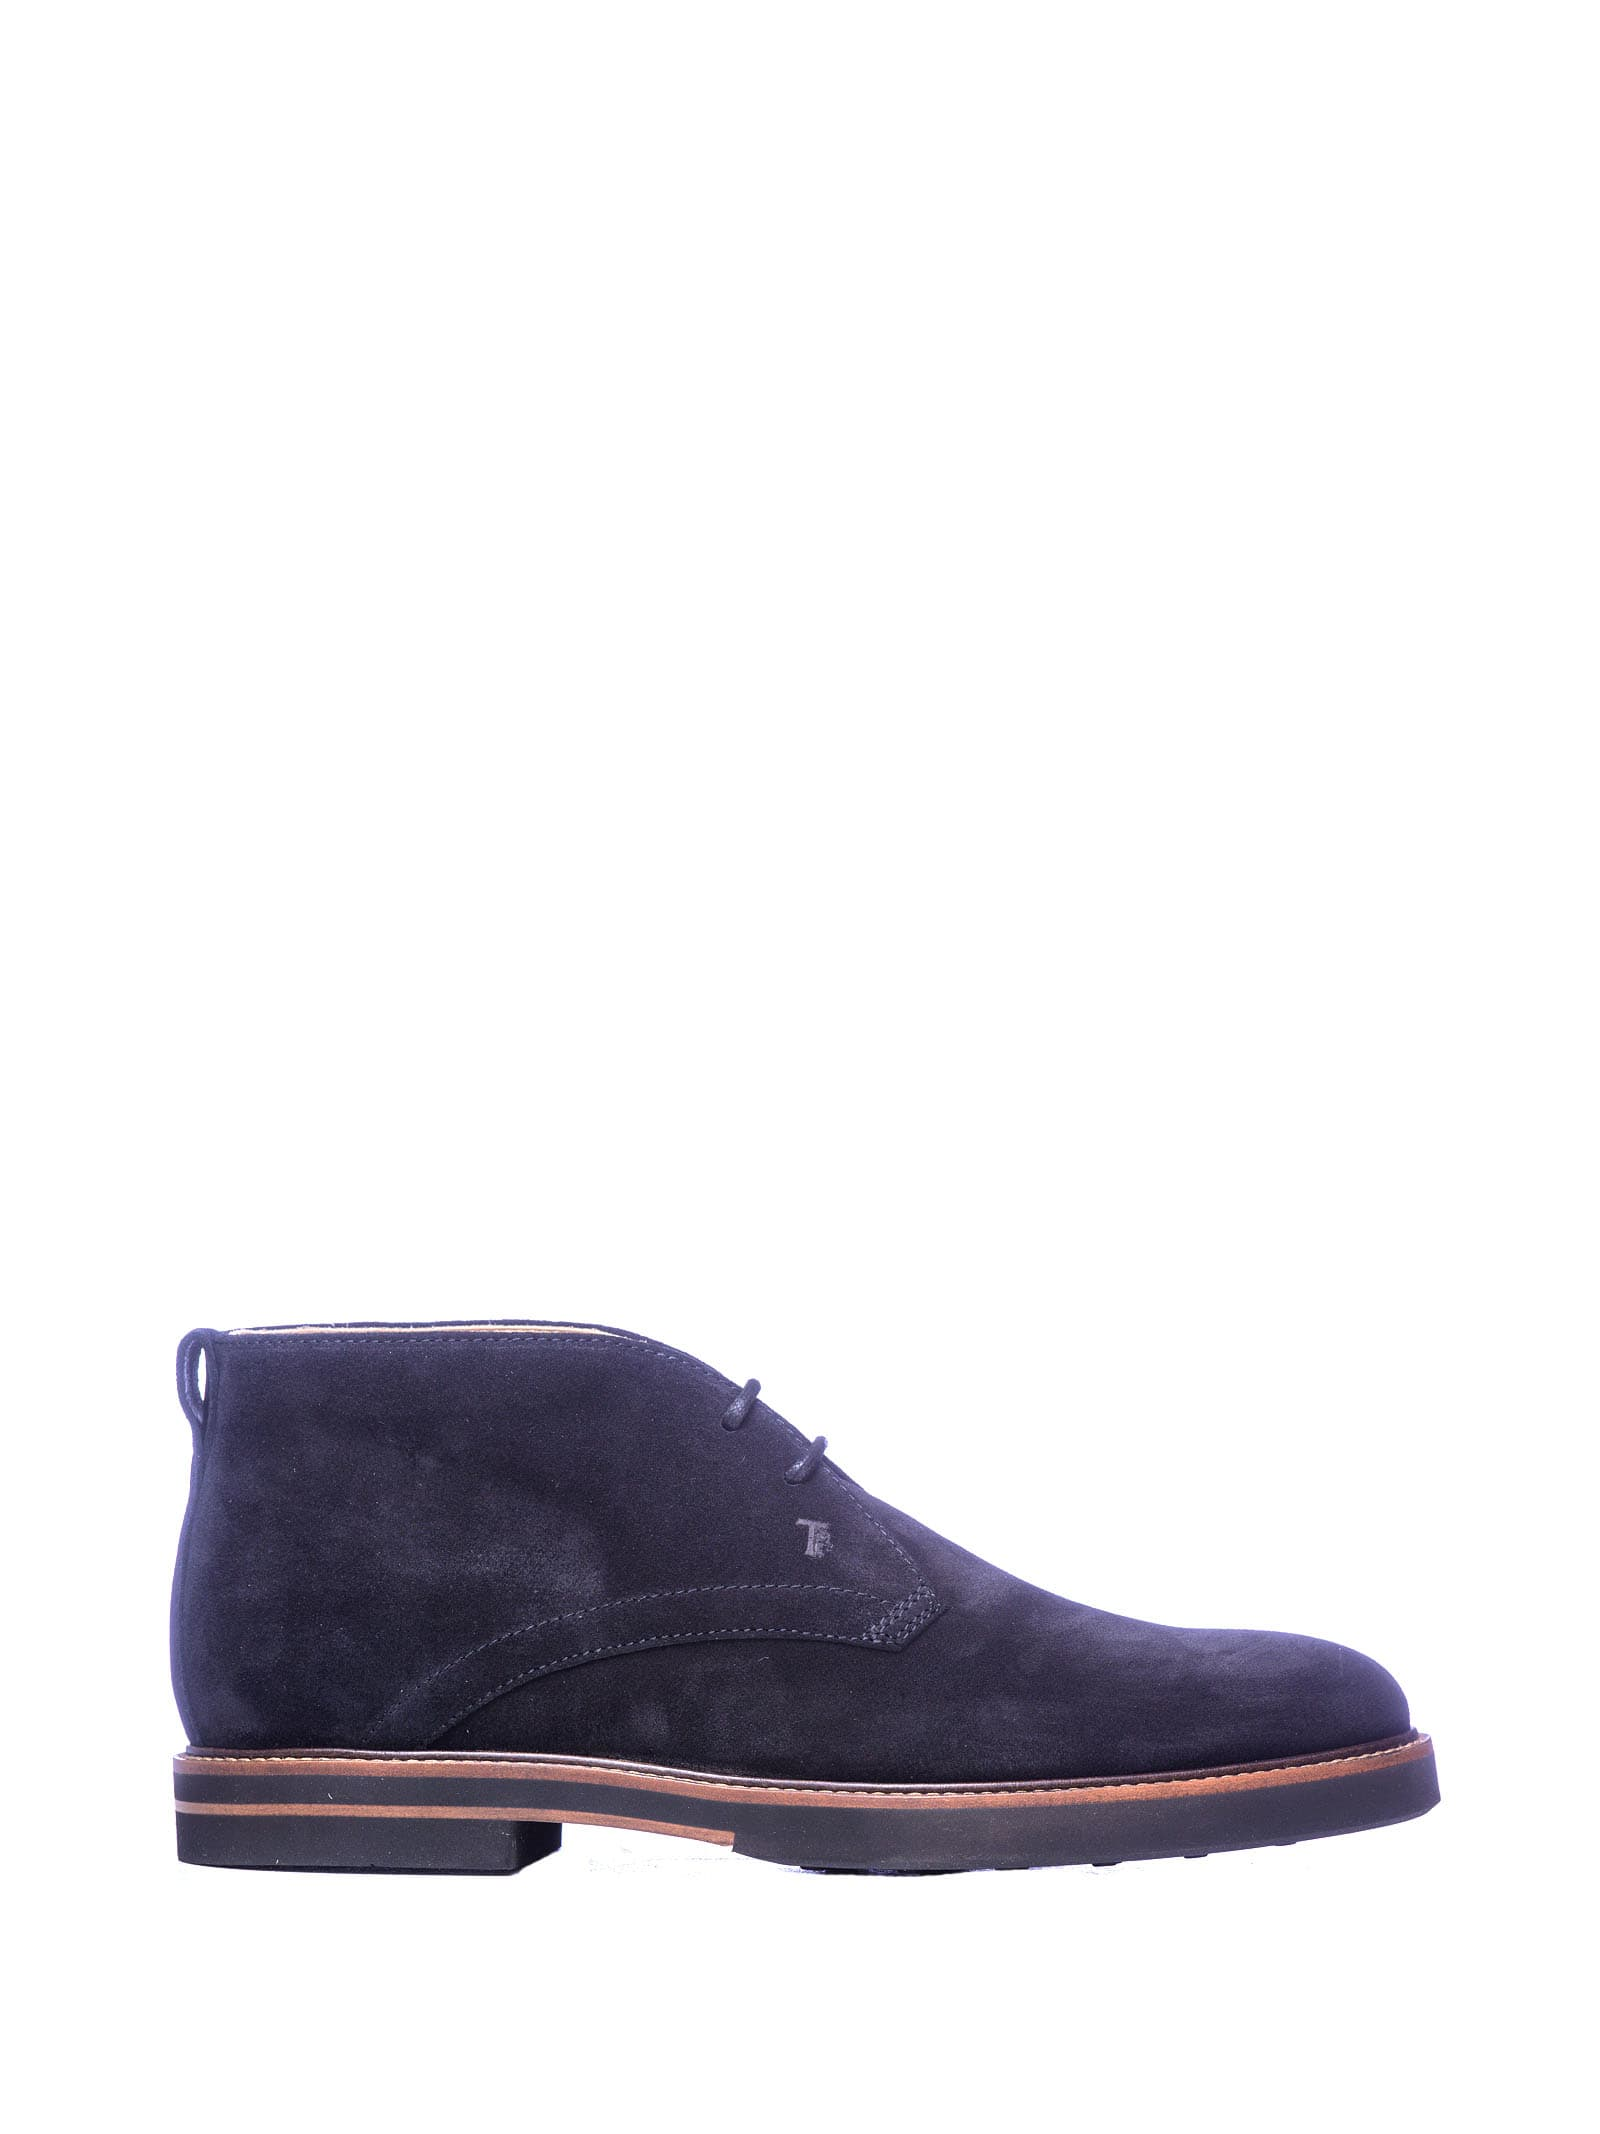 Tods Tods Desert Boots